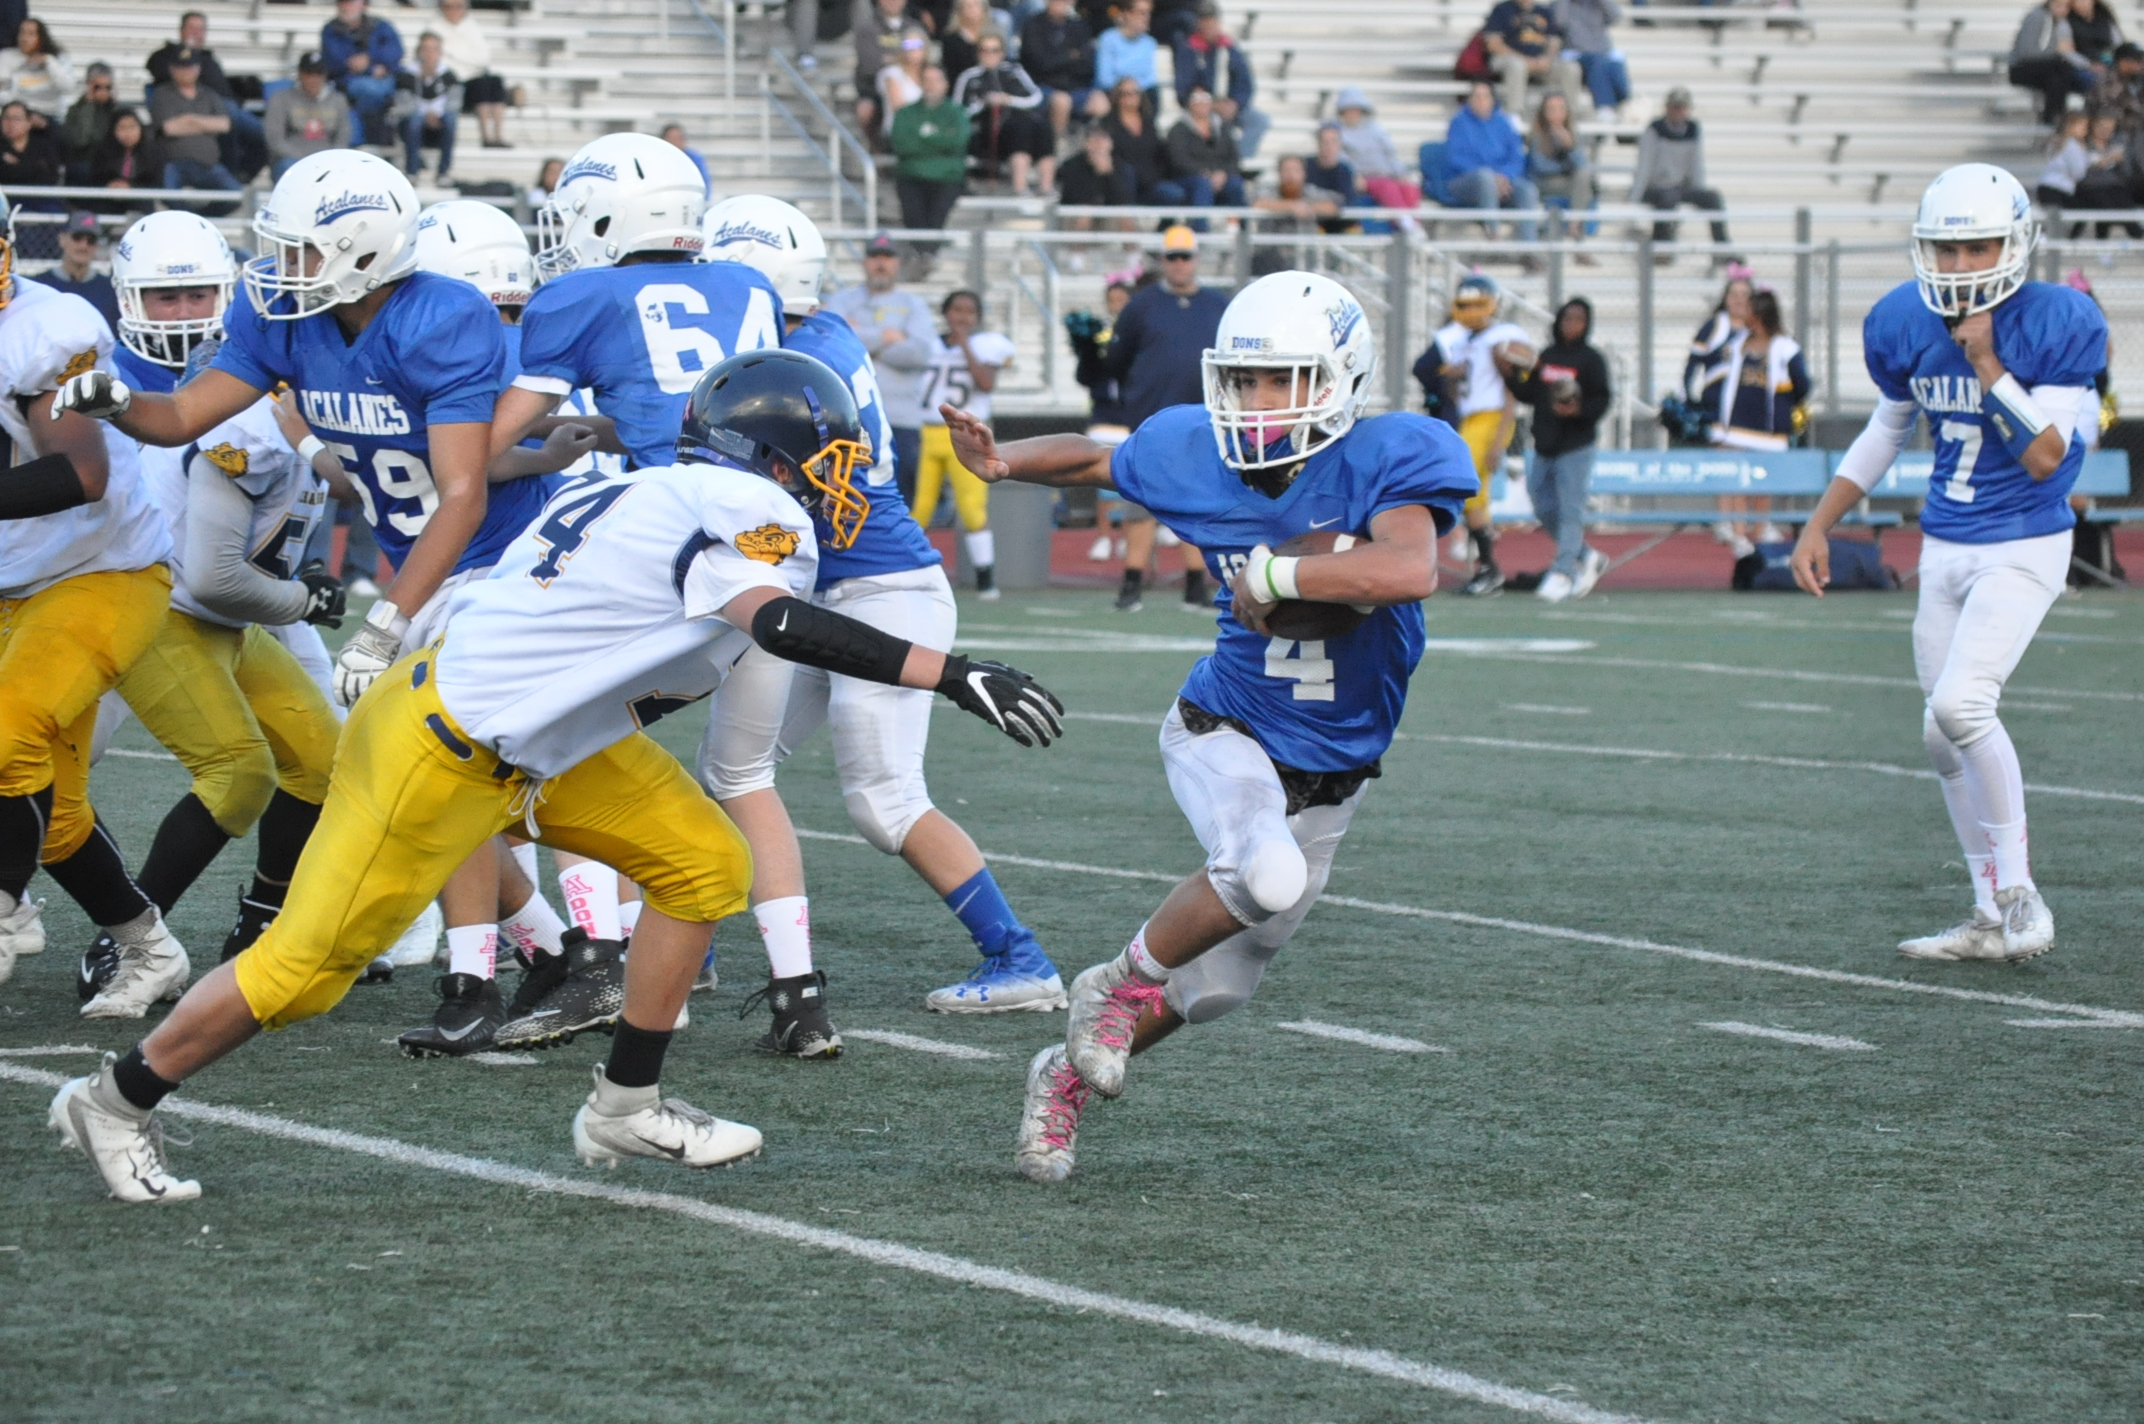 Freshman Dons Football routs Alhambra